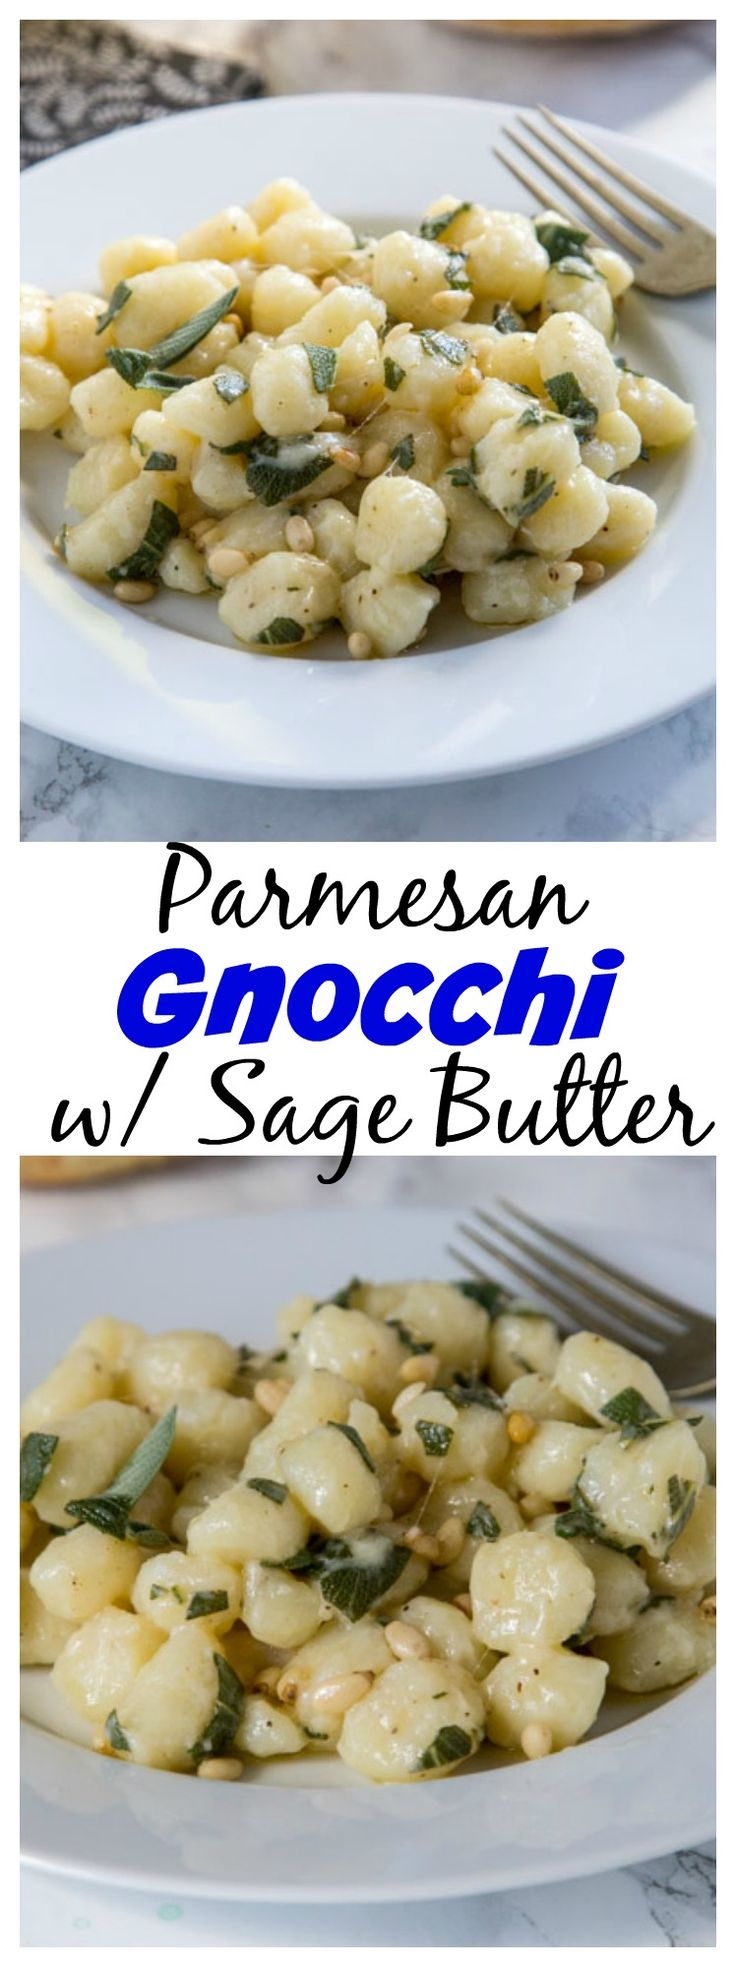 Parmesan Gnocchi with Sage Butter– comfort food that is on the table in 15 minutes. Soft gnocchi tossed with melted butter, sage, and Parmesan cheese!